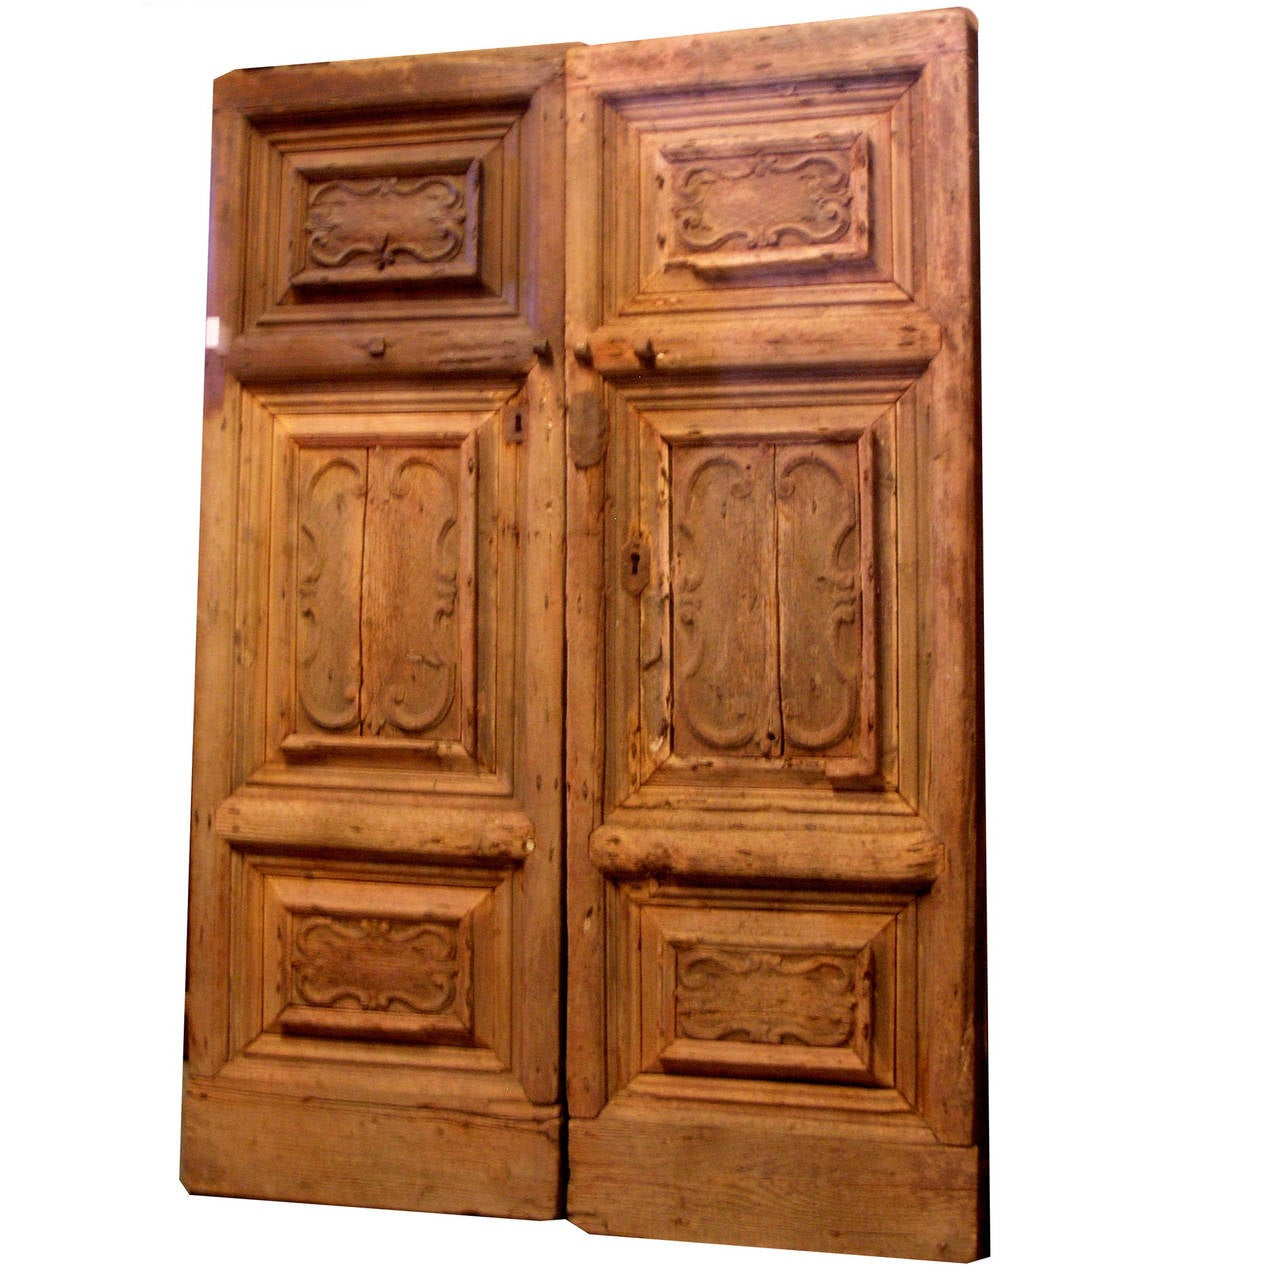 Antique larch carved double door for sale at 1stdibs for Double doors for sale